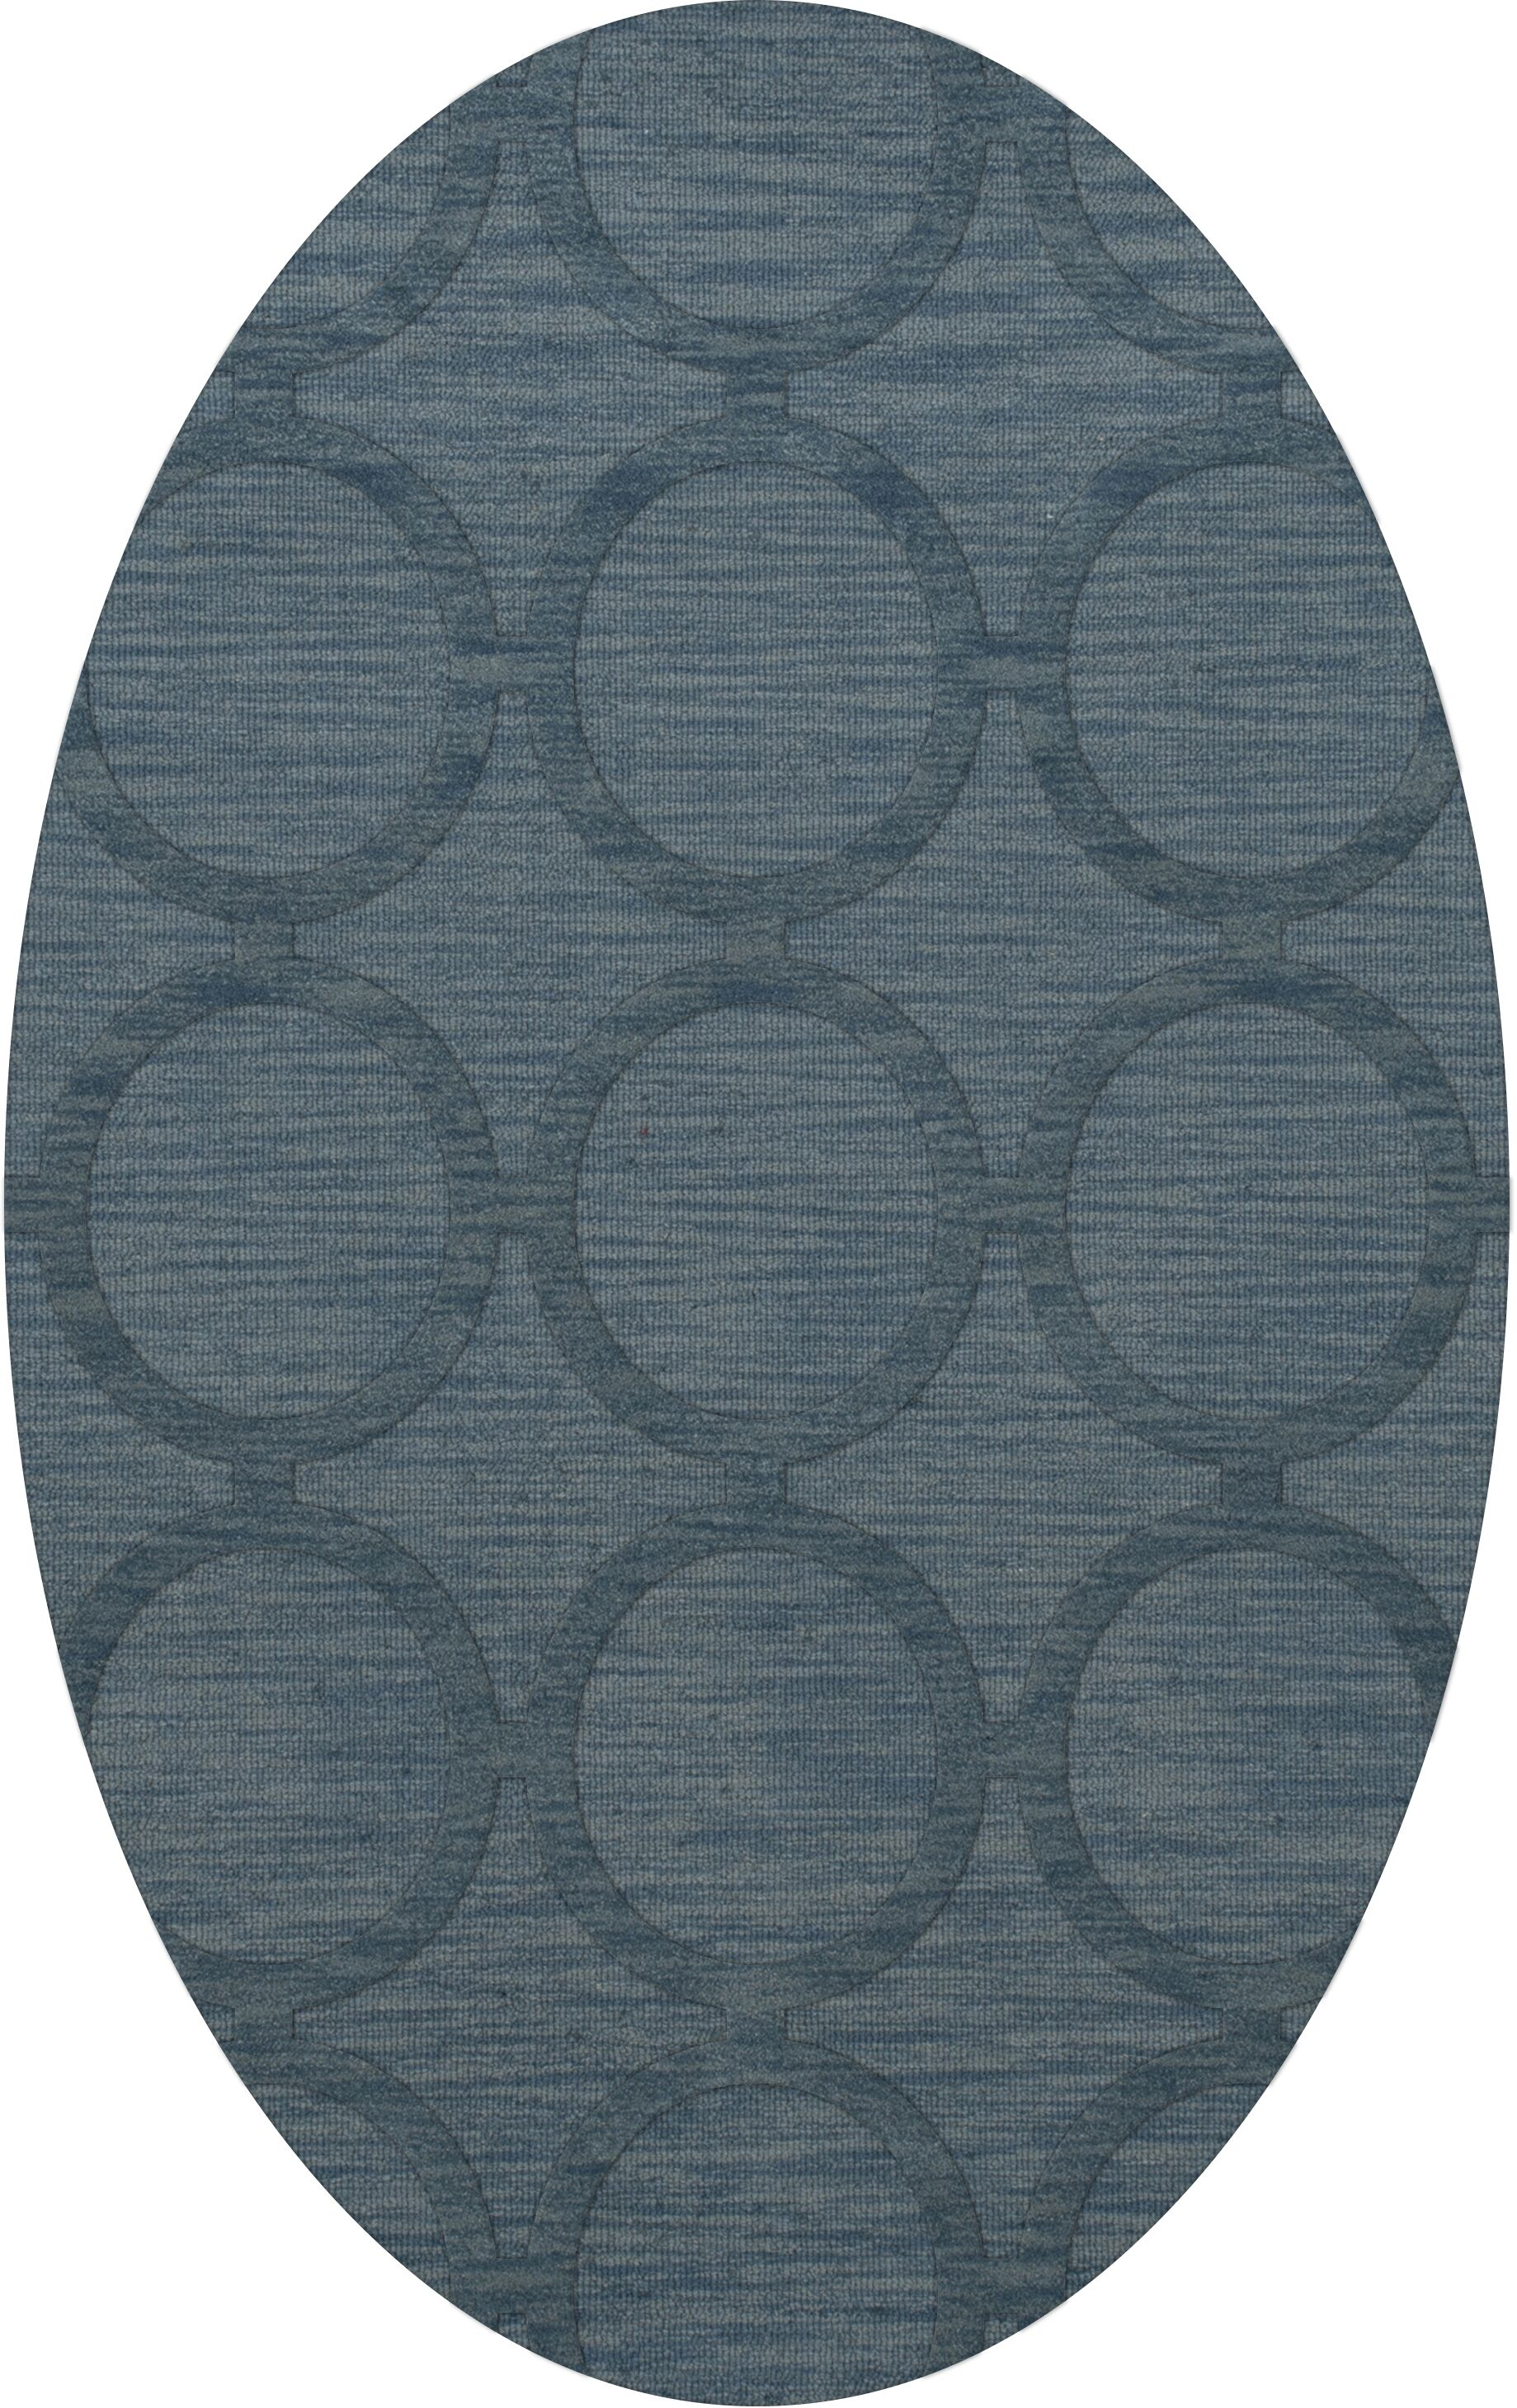 Dover Tufted Wool Sky Area Rug Rug Size: Oval 6' x 9'